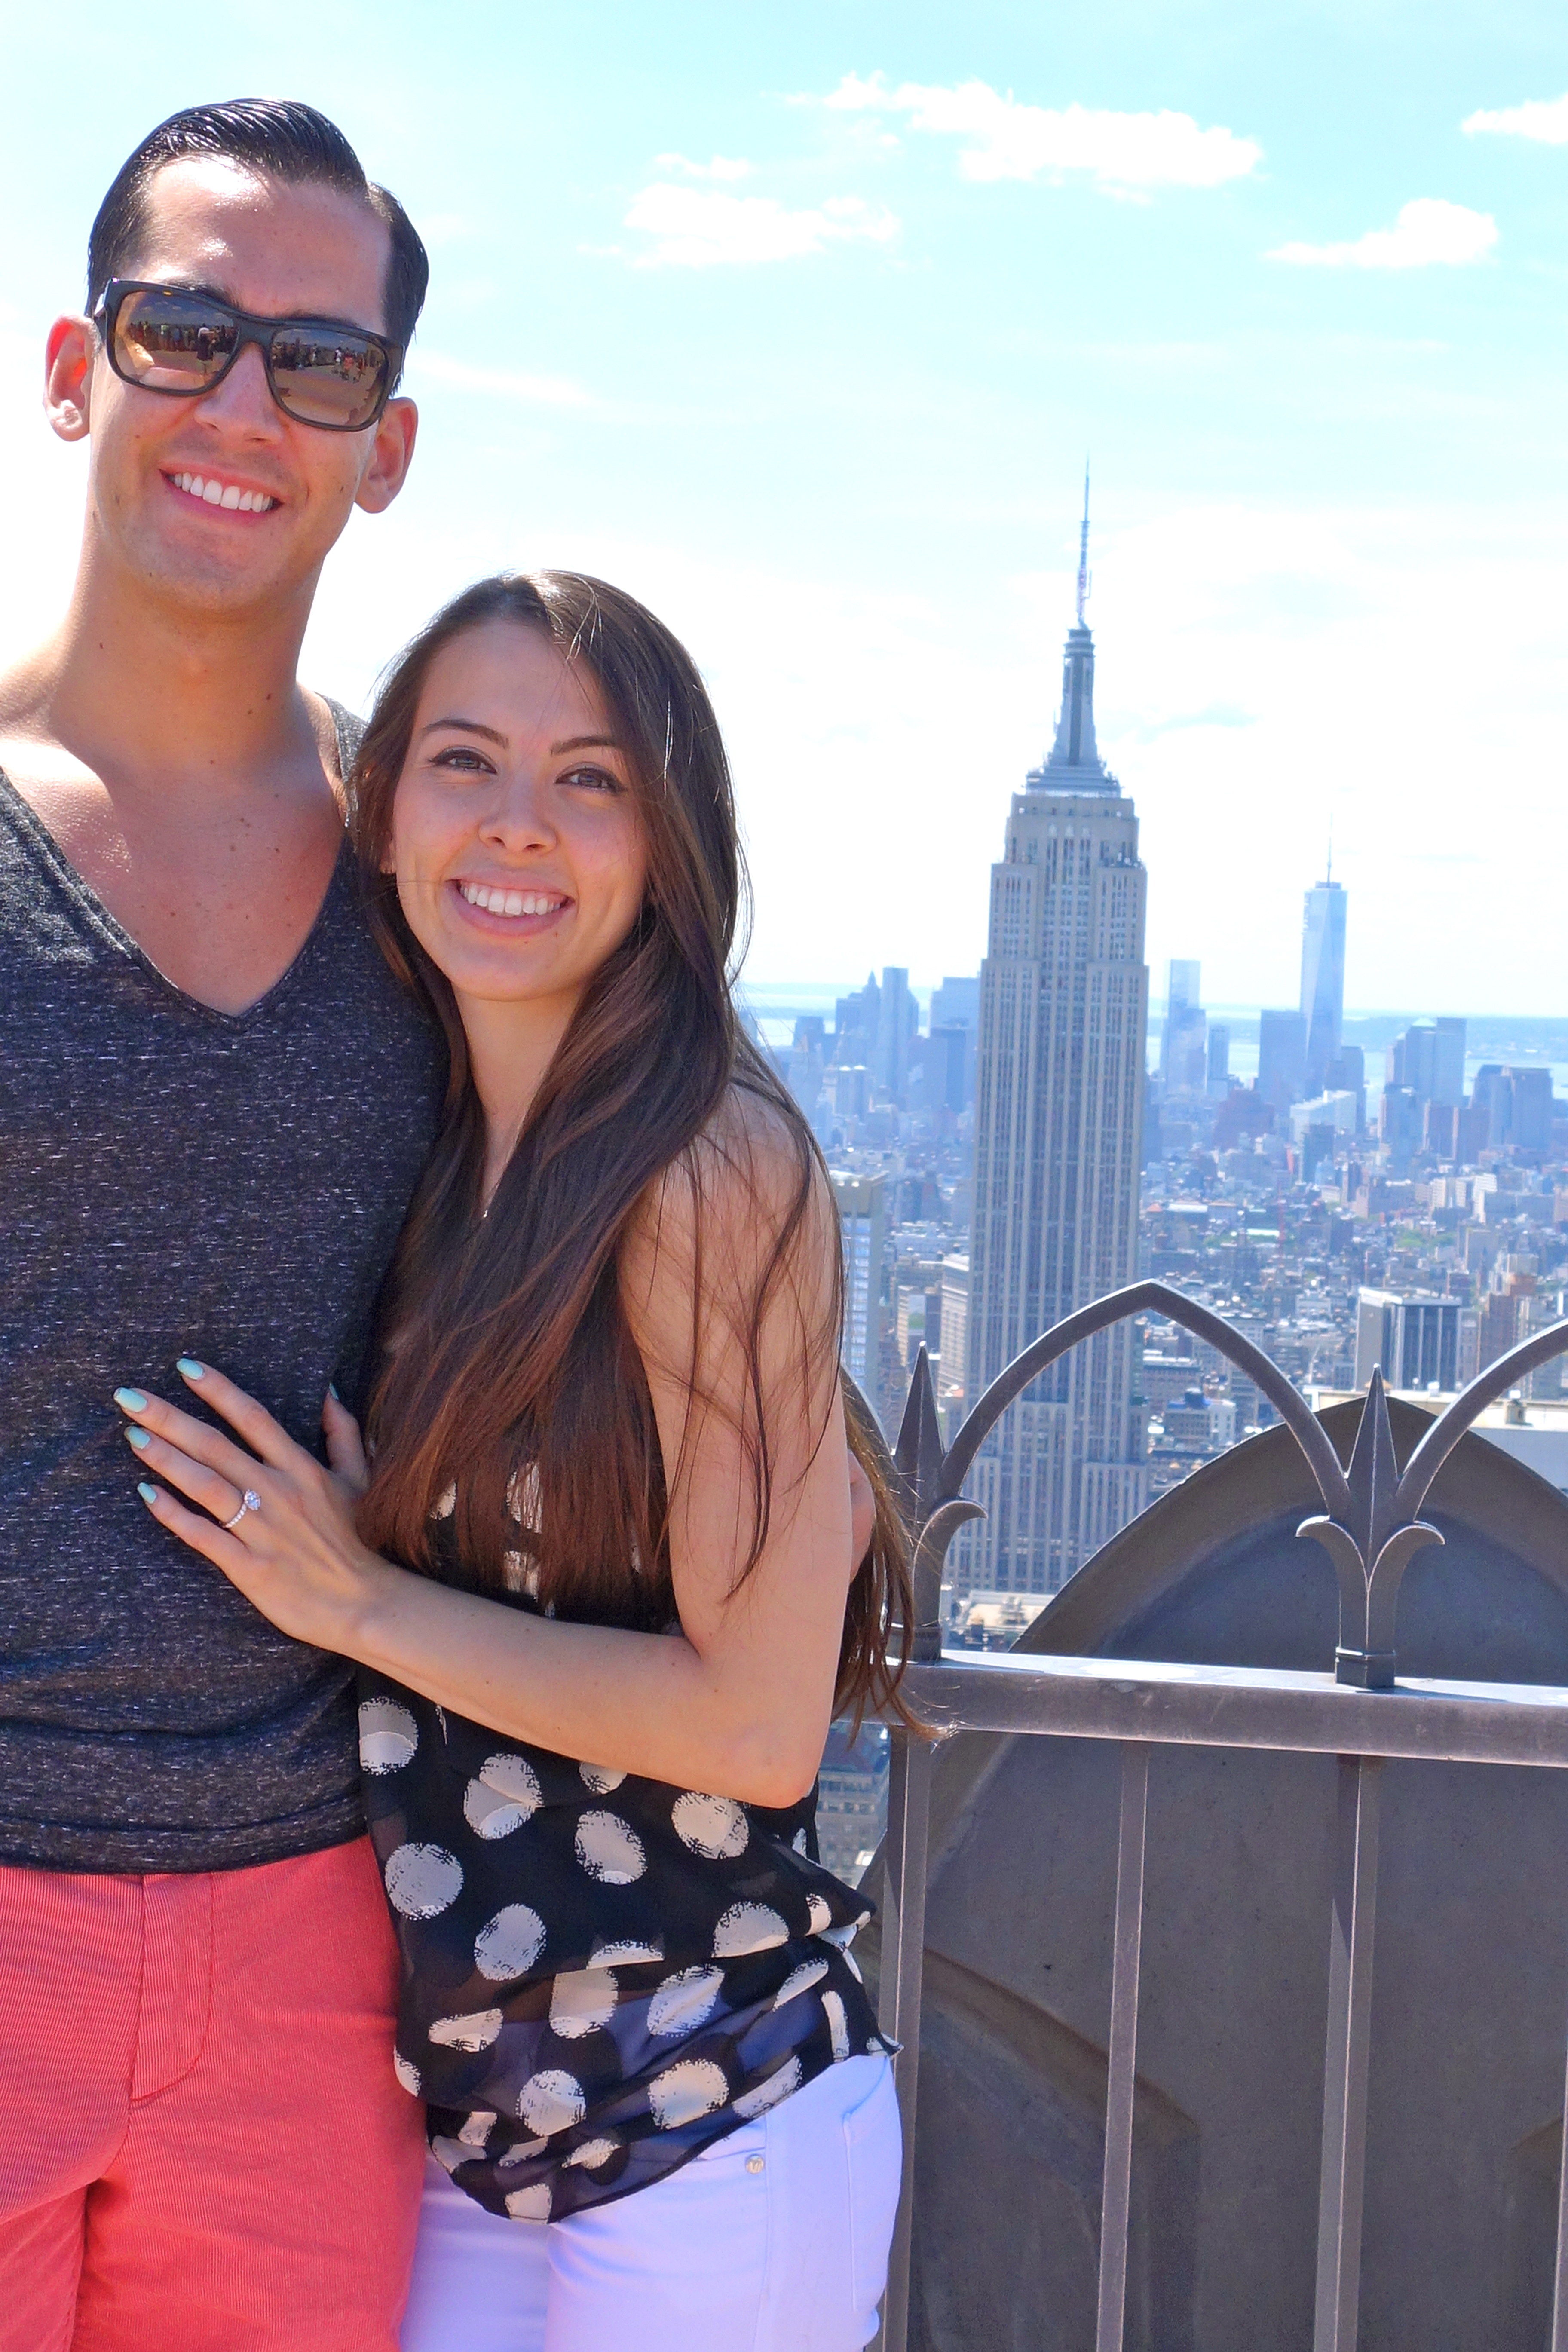 Image 1 of Shasling and David | Top of The Rock Proposal